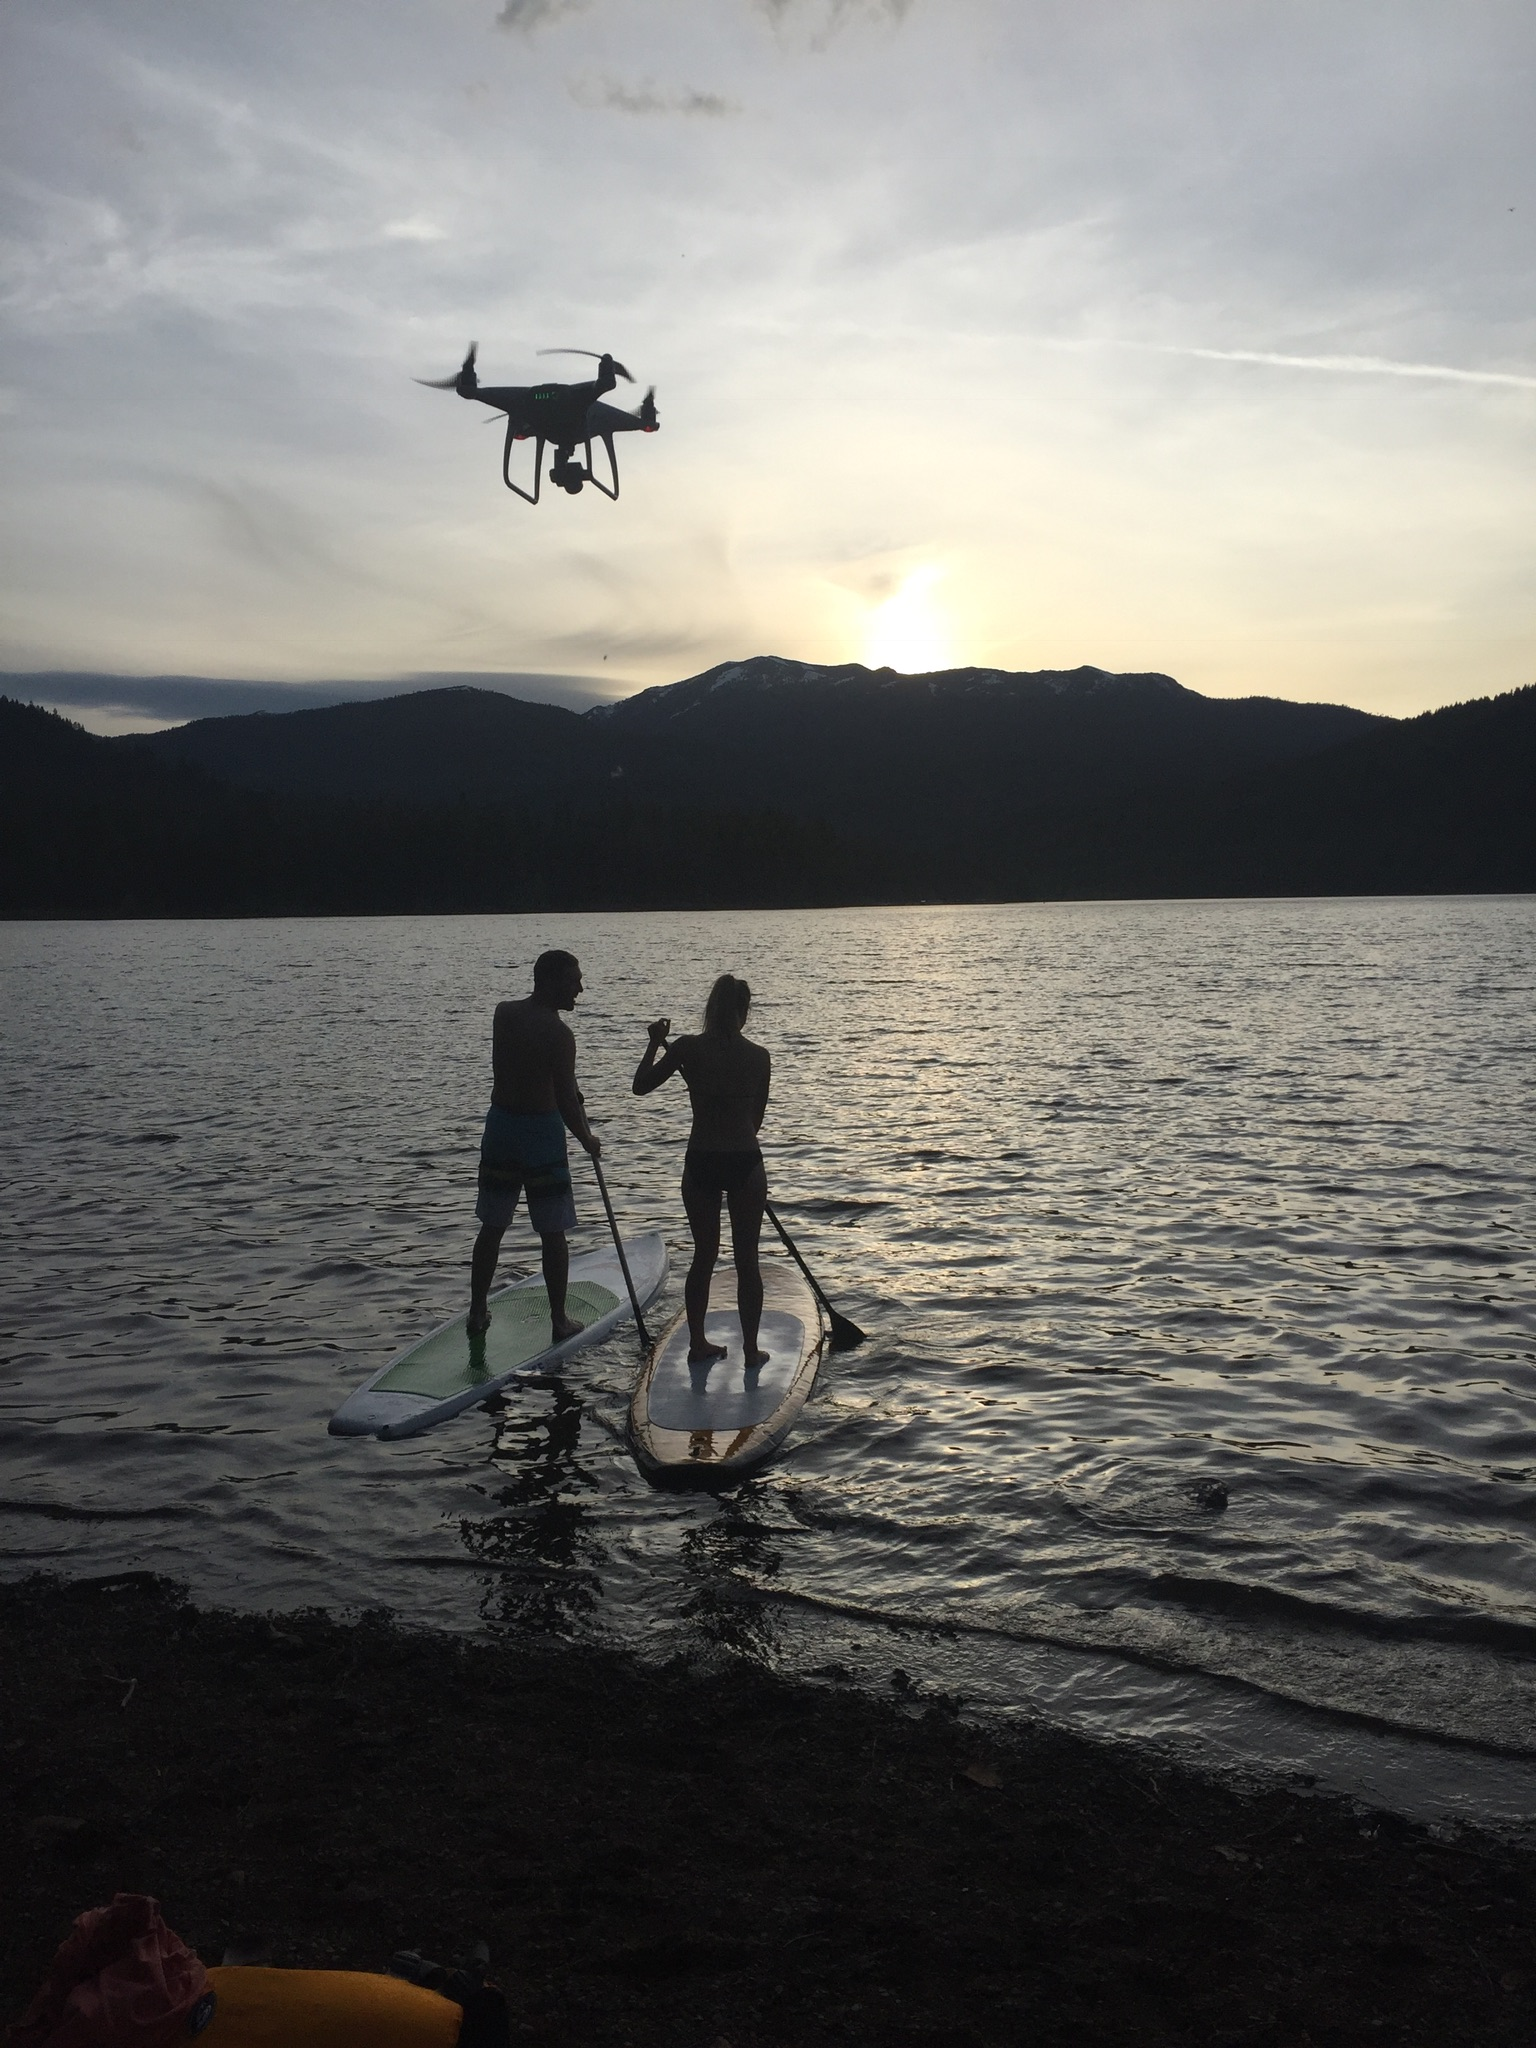 Lake Siskiyou Shoot. First time knowing what it's like having a drone following me. It sounds like a swarm of bees.